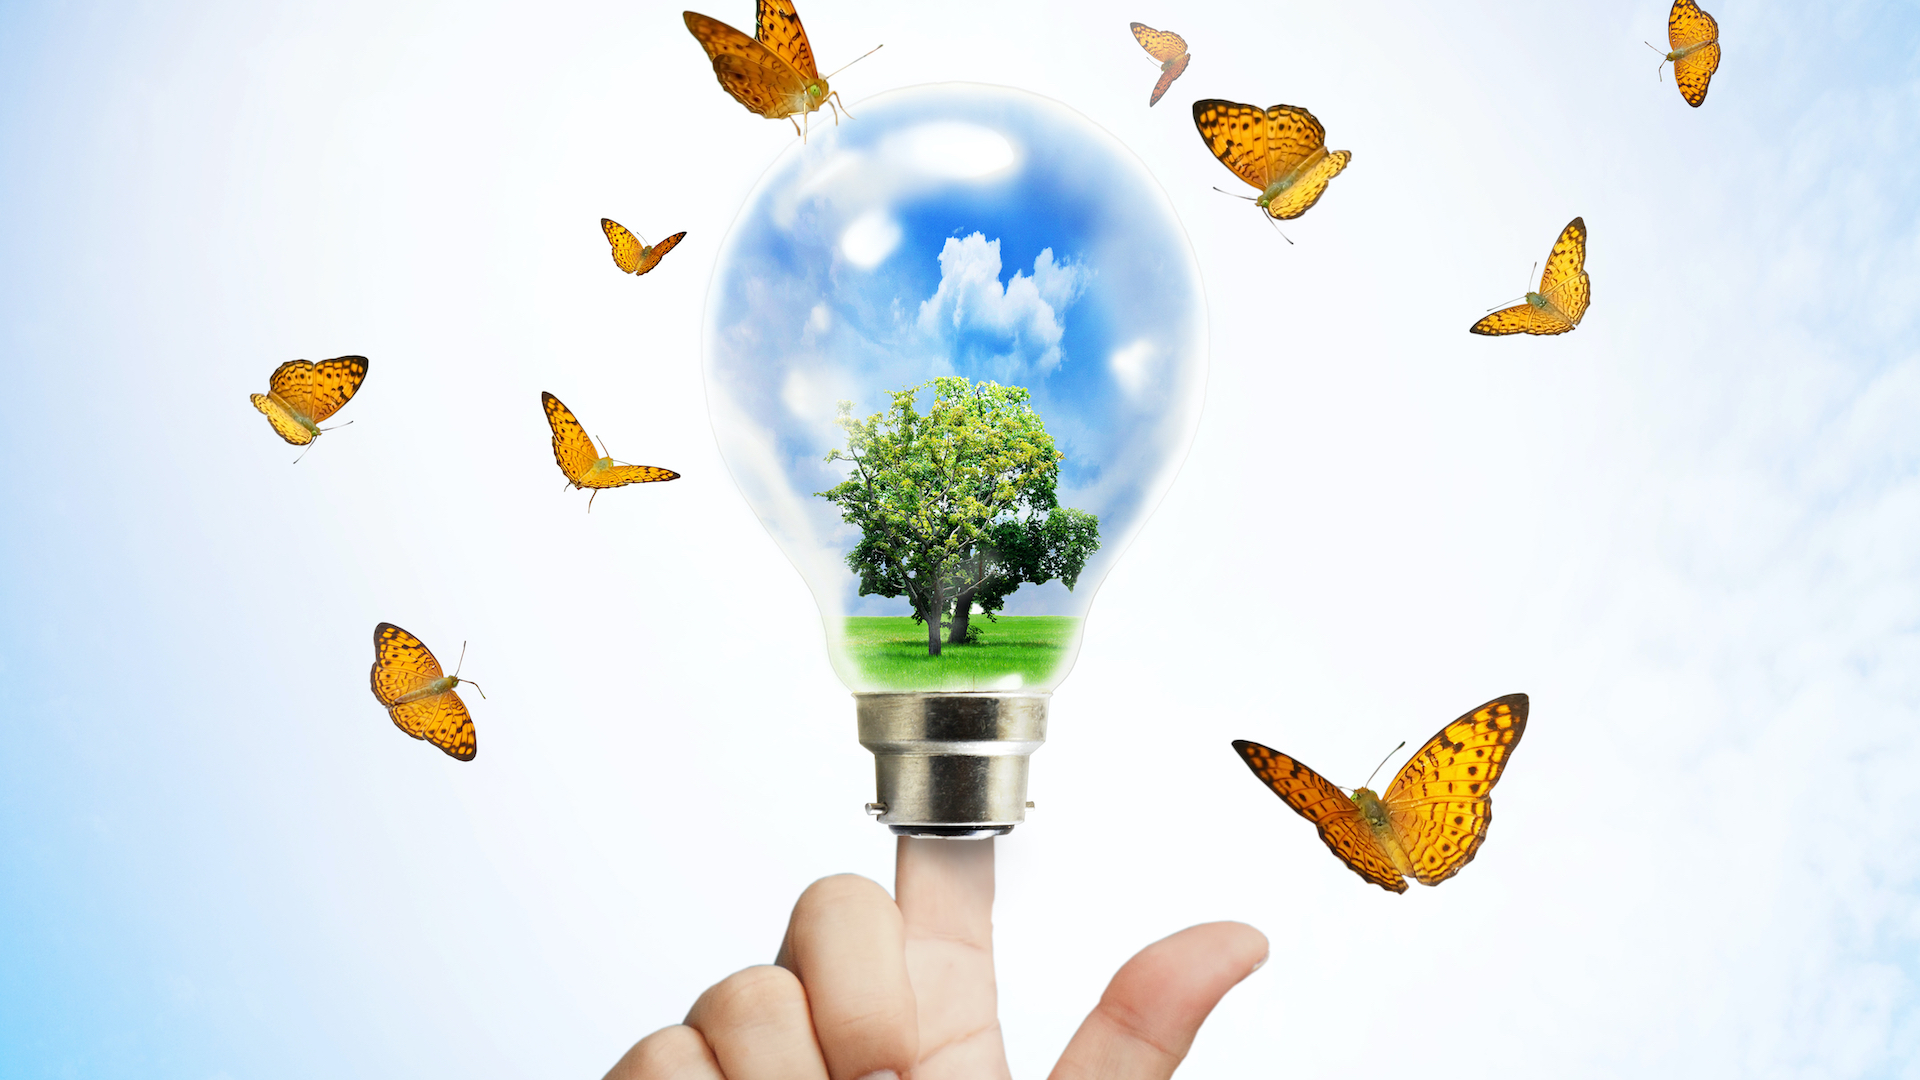 picture of a finger powering a light bulb, with butterflies around it